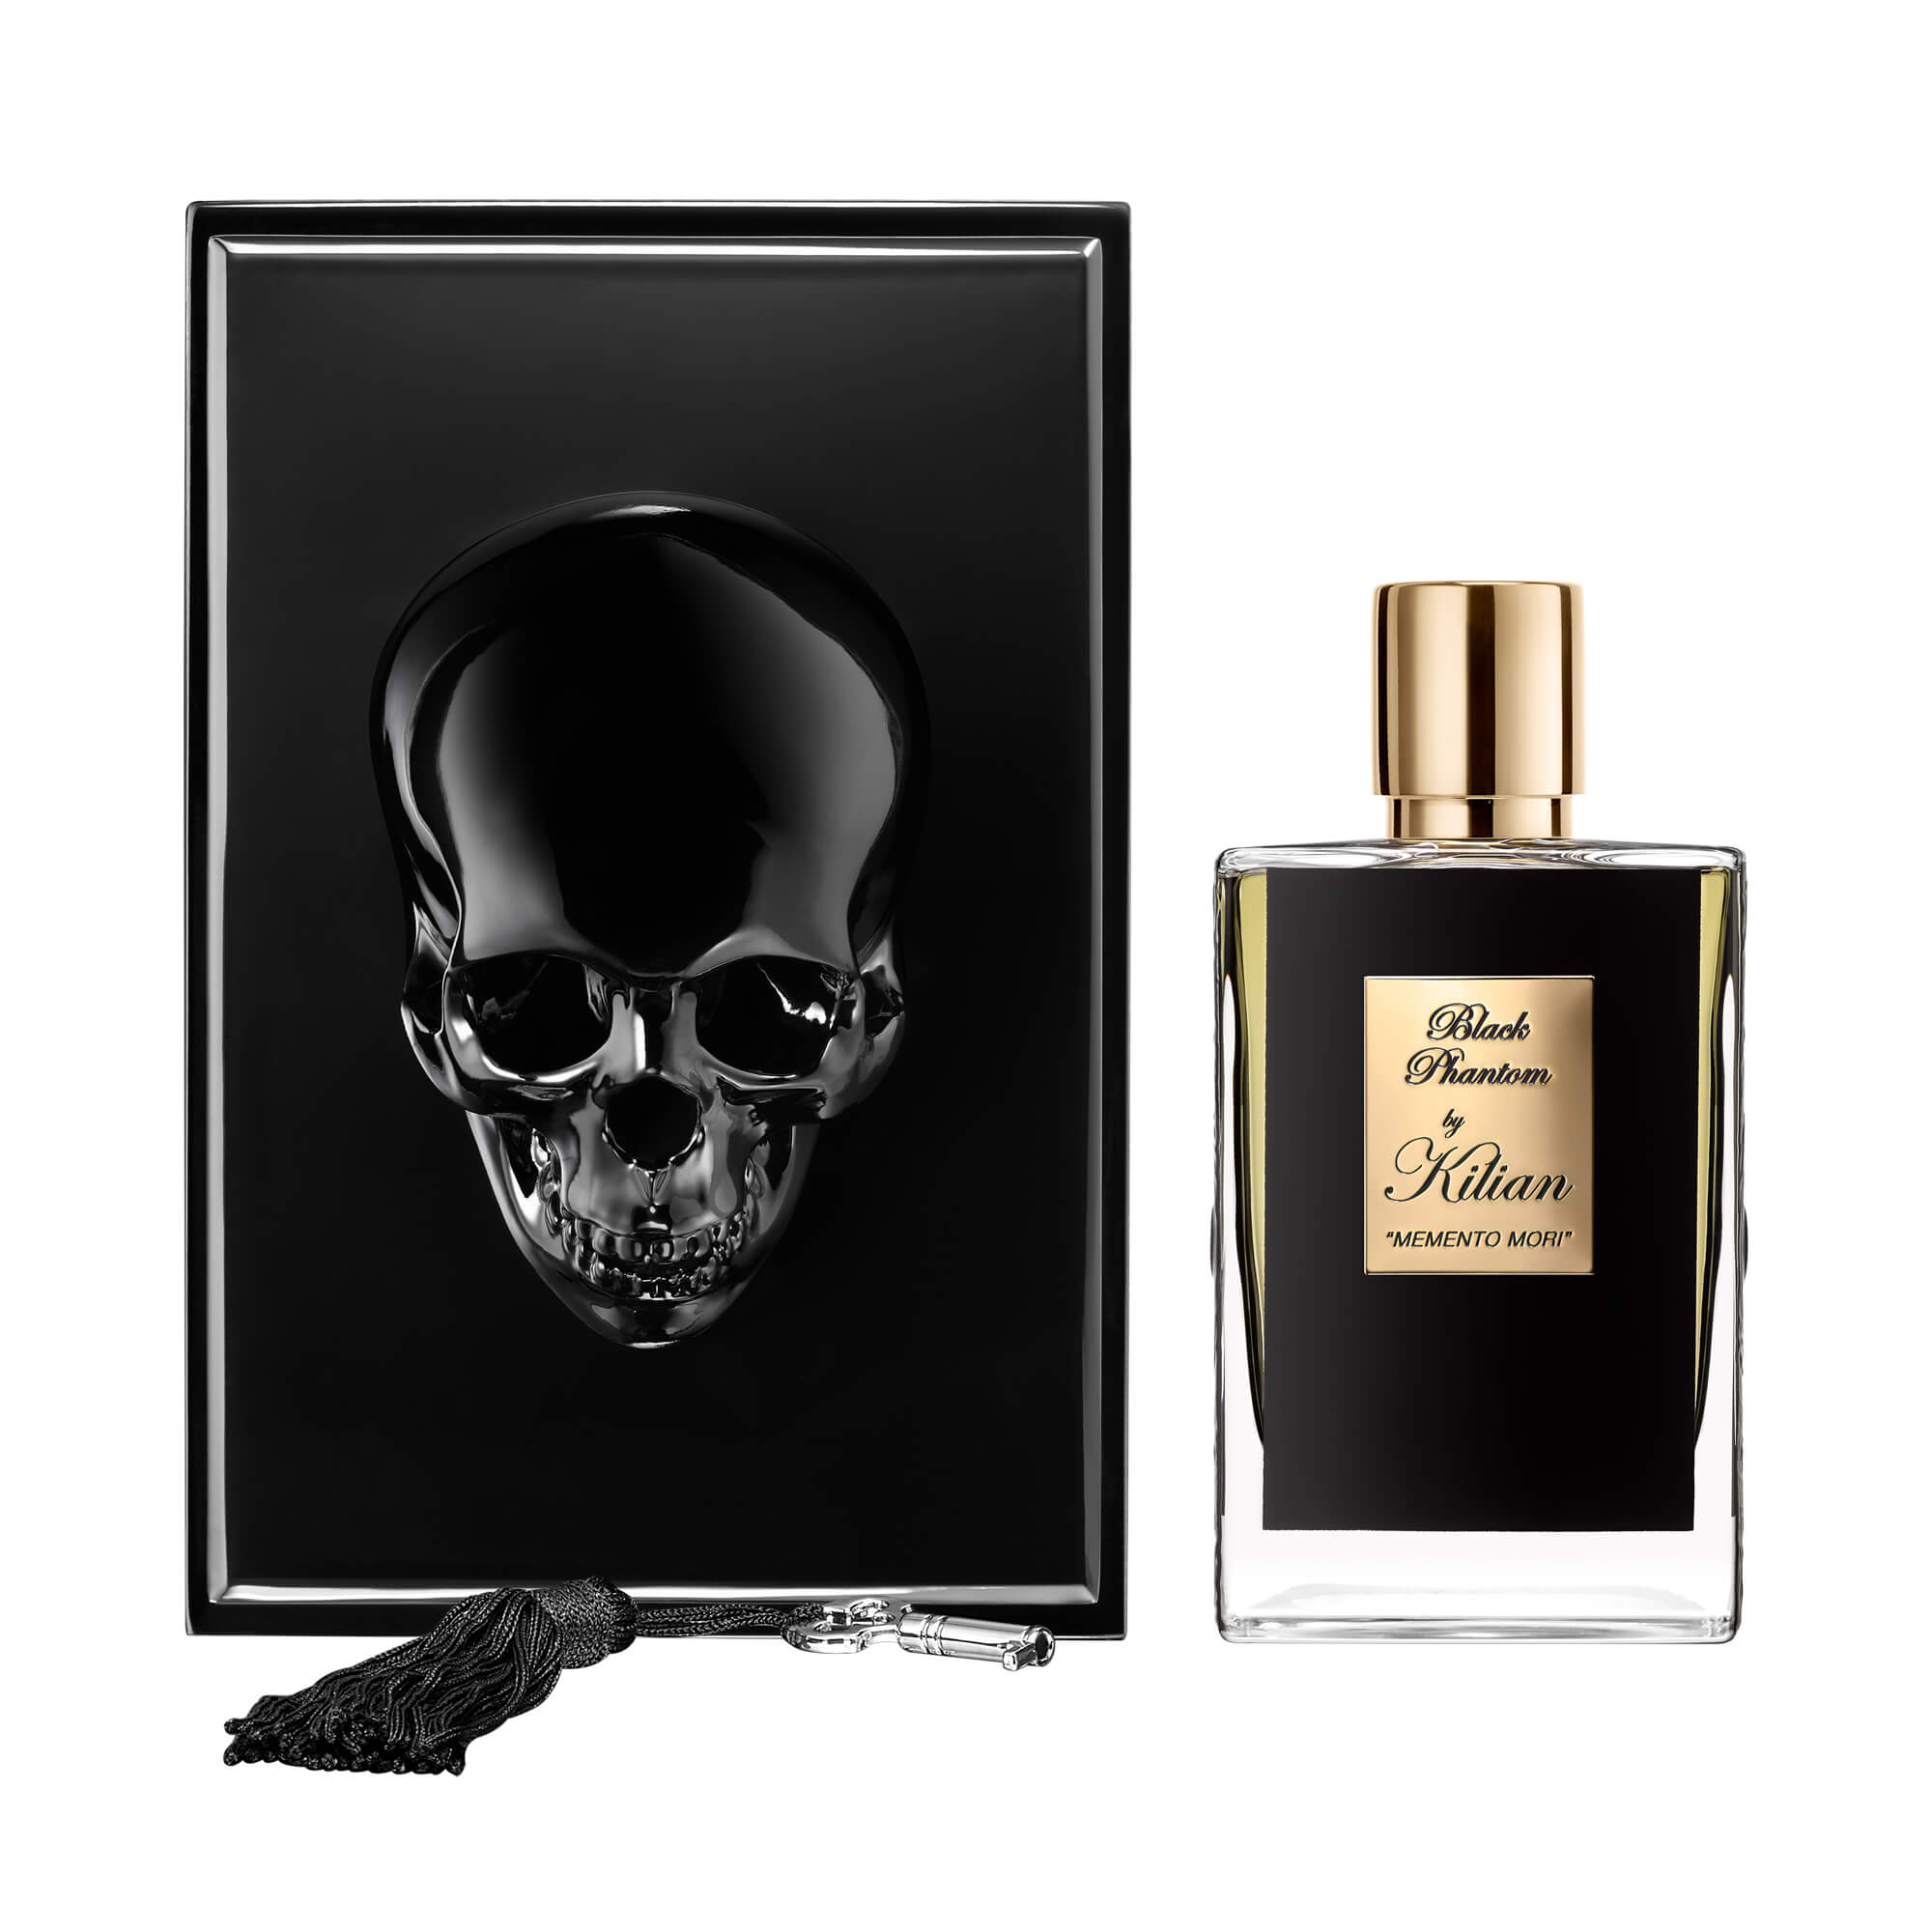 BY KILIAN - Black Phantom  with Coffret - 50 ml